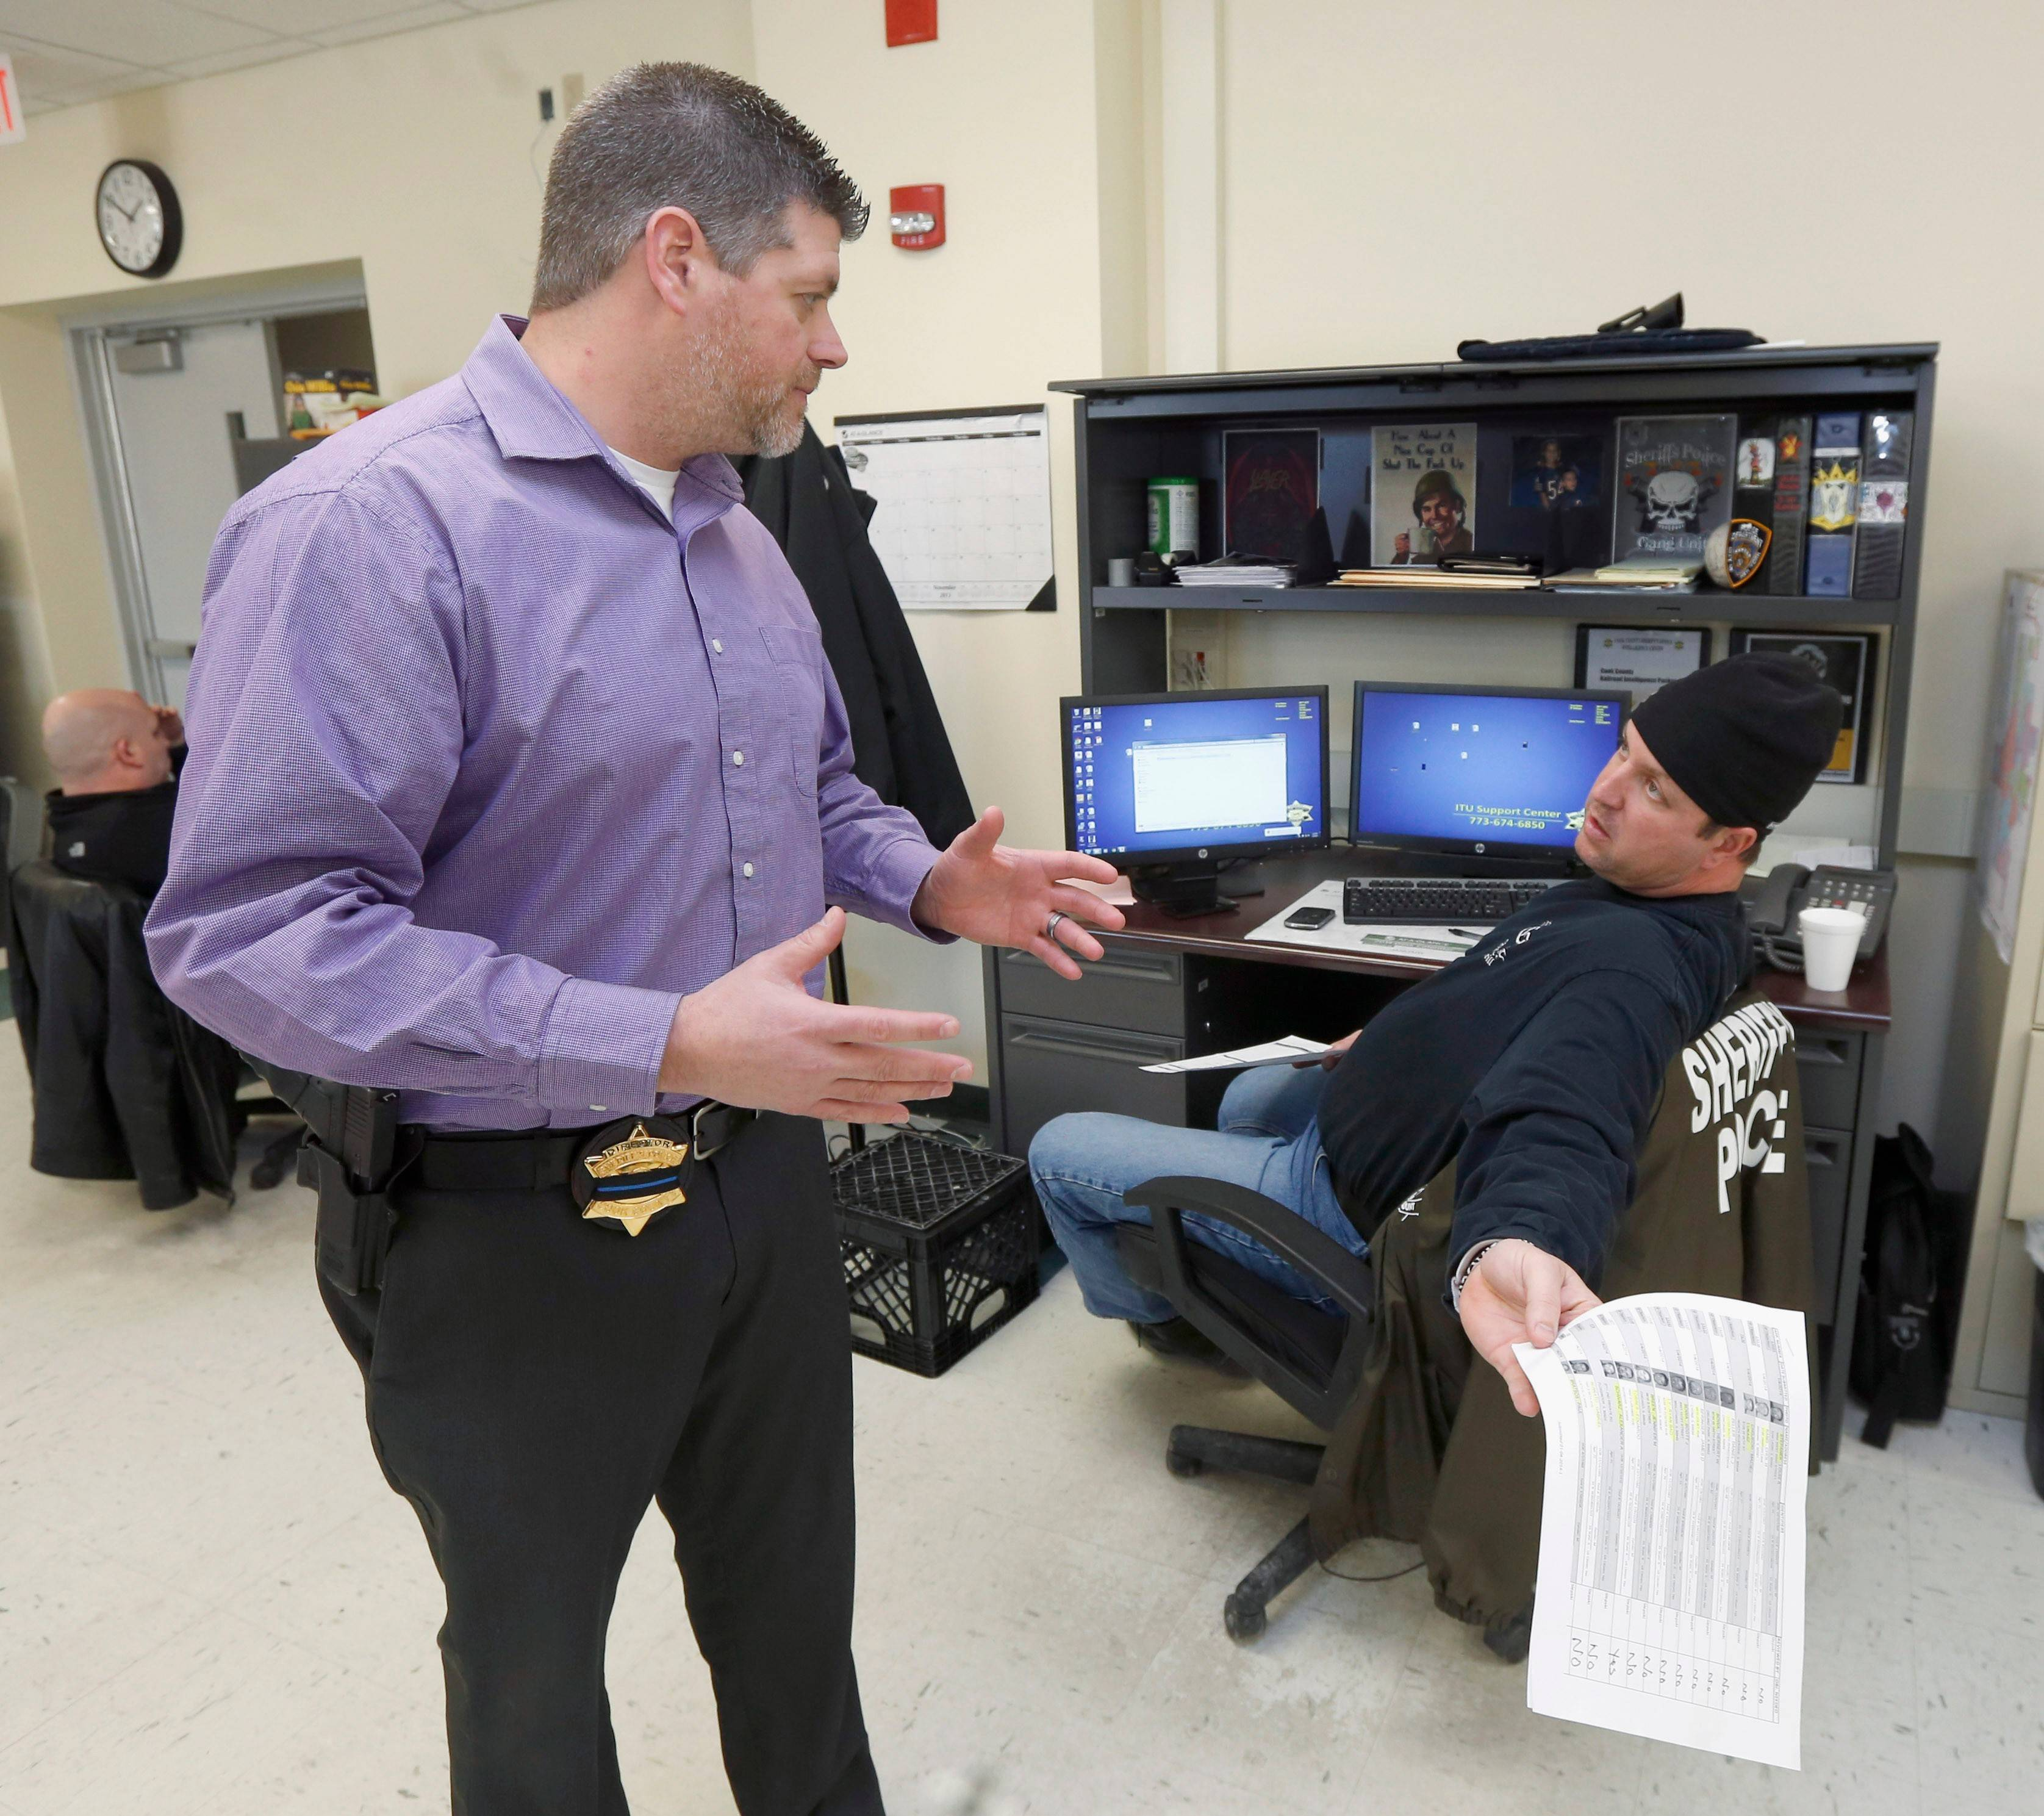 John Blair, left, executive director of the Cook County sheriff's department Intelligence Center, consults with officer John Slepski about a firearms background check Slepski is performing at the center in Chicago.